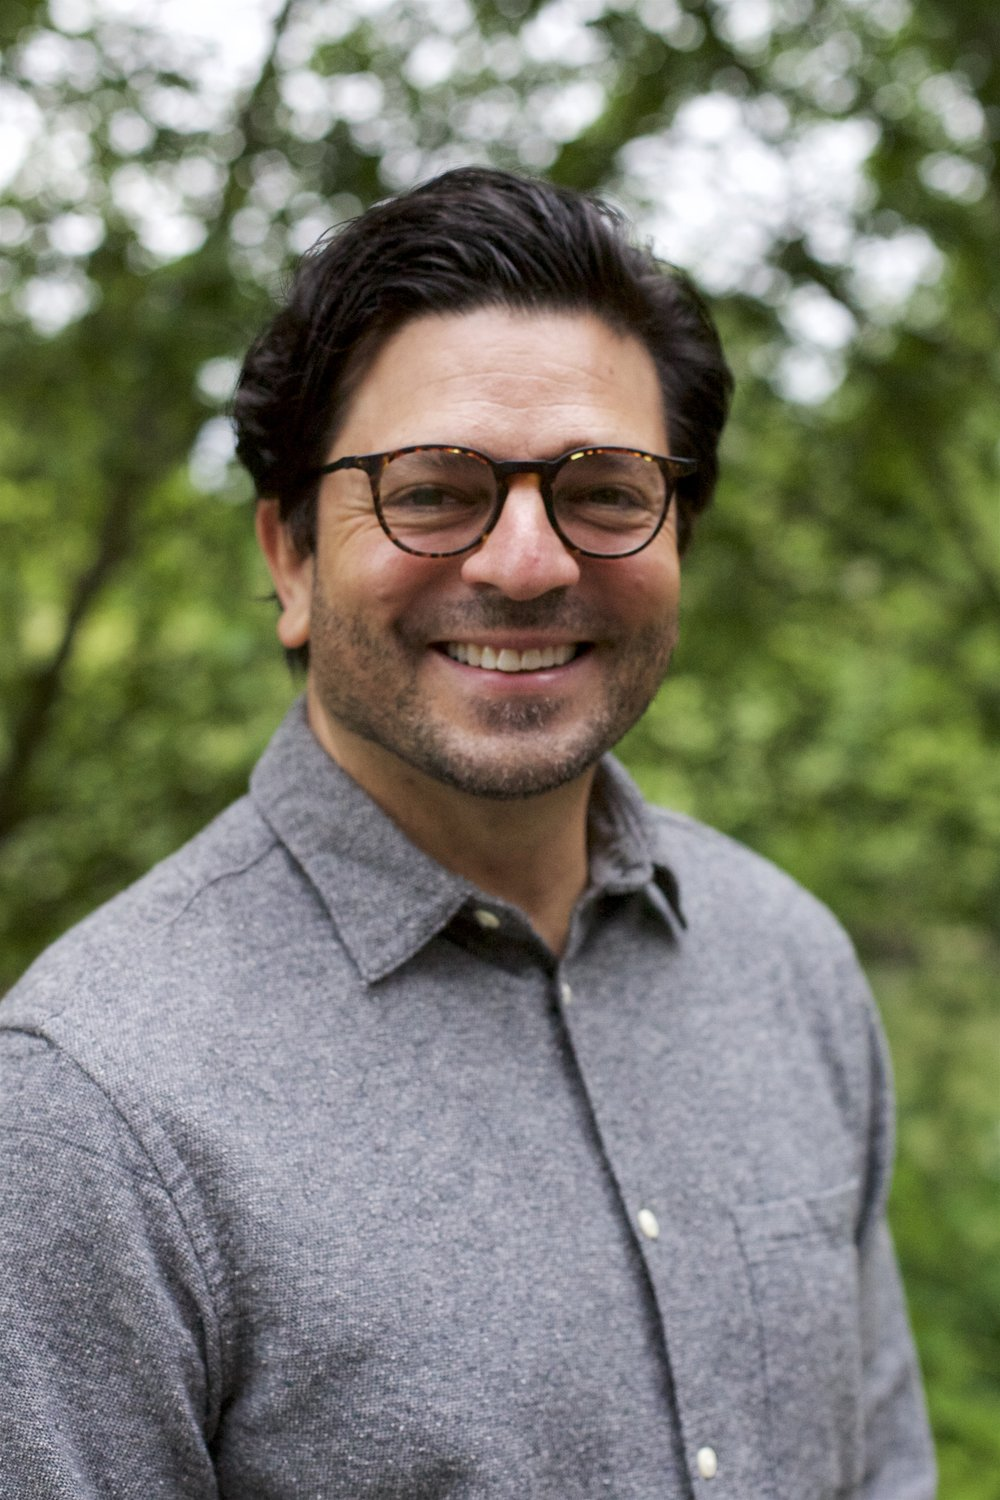 Jason Zontanos, ma, lmhc, therapist   ∙ Adults and Youth (12 & up) ∙ Depression ∙ Anxiety ∙ Bereavement ∙ Grief & Loss ∙ Death of a Child ∙ Trauma and PTSD ∙ Stress Reduction & Coping Skills ∙ Behavioral Issues & Impulse Control ∙ Identity & Self-Worth ∙ OCD & Hoarding ∙ Chronic Pain ∙Terminal Illness/ End of Life Issues ∙ Mindfulness Training ∙ Spirituality & Meaning ∙ Major Life Changes/ Transitions ∙ Relationship Issues & Endings ∙Career Counseling & Exploration